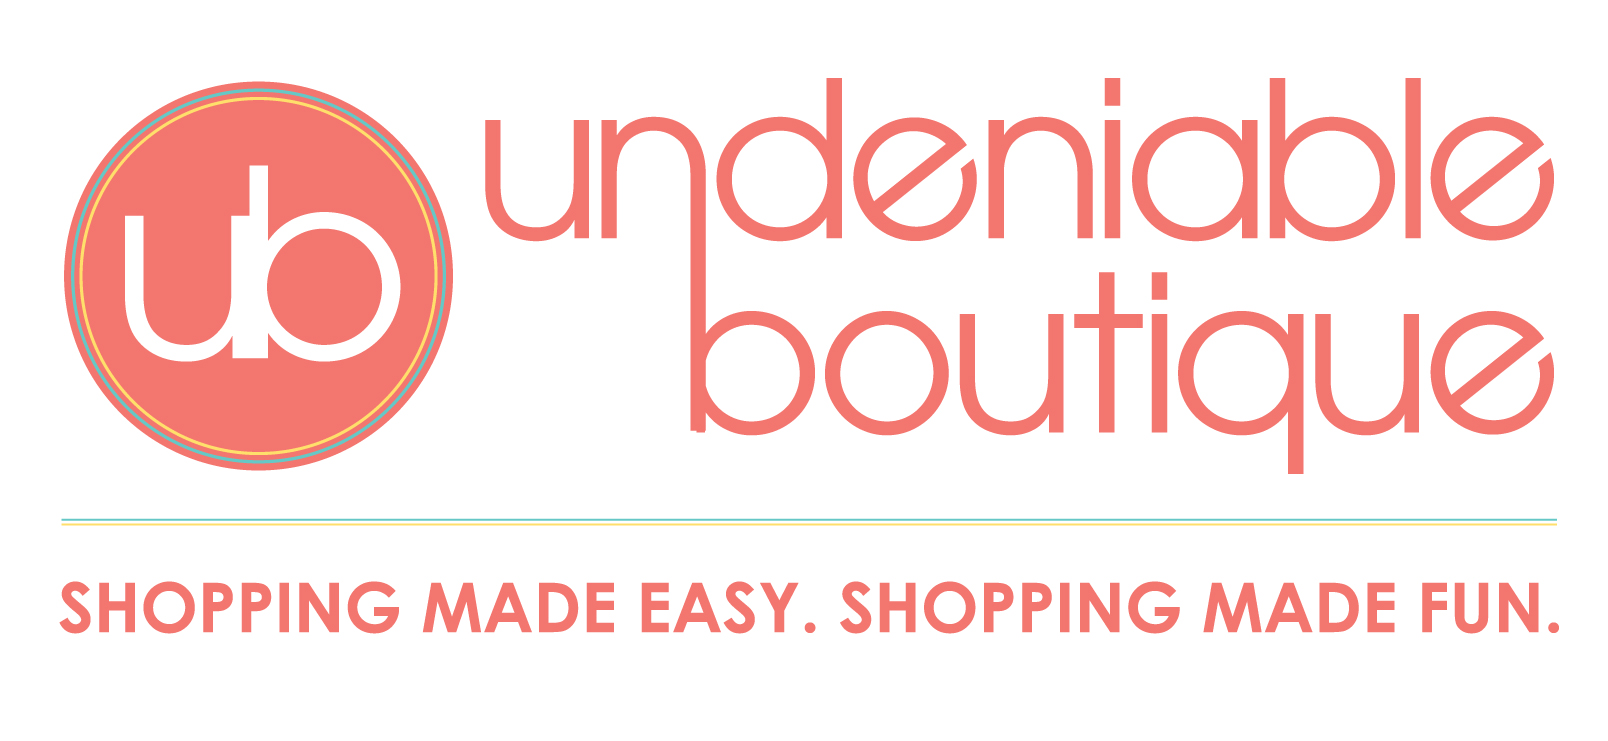 undeniable boutique logo Jan 2017